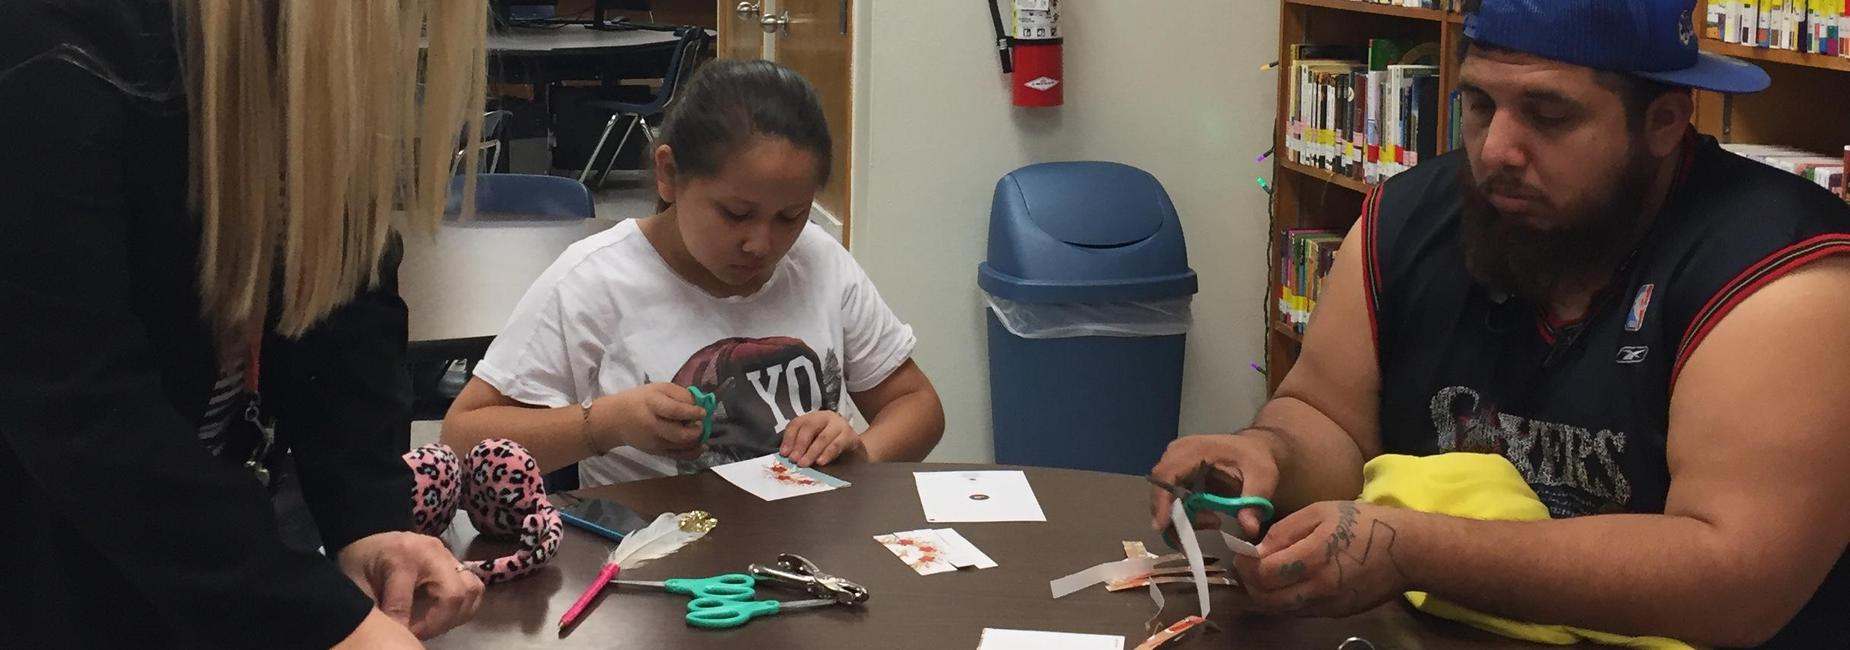 Father and daughter crafting in library